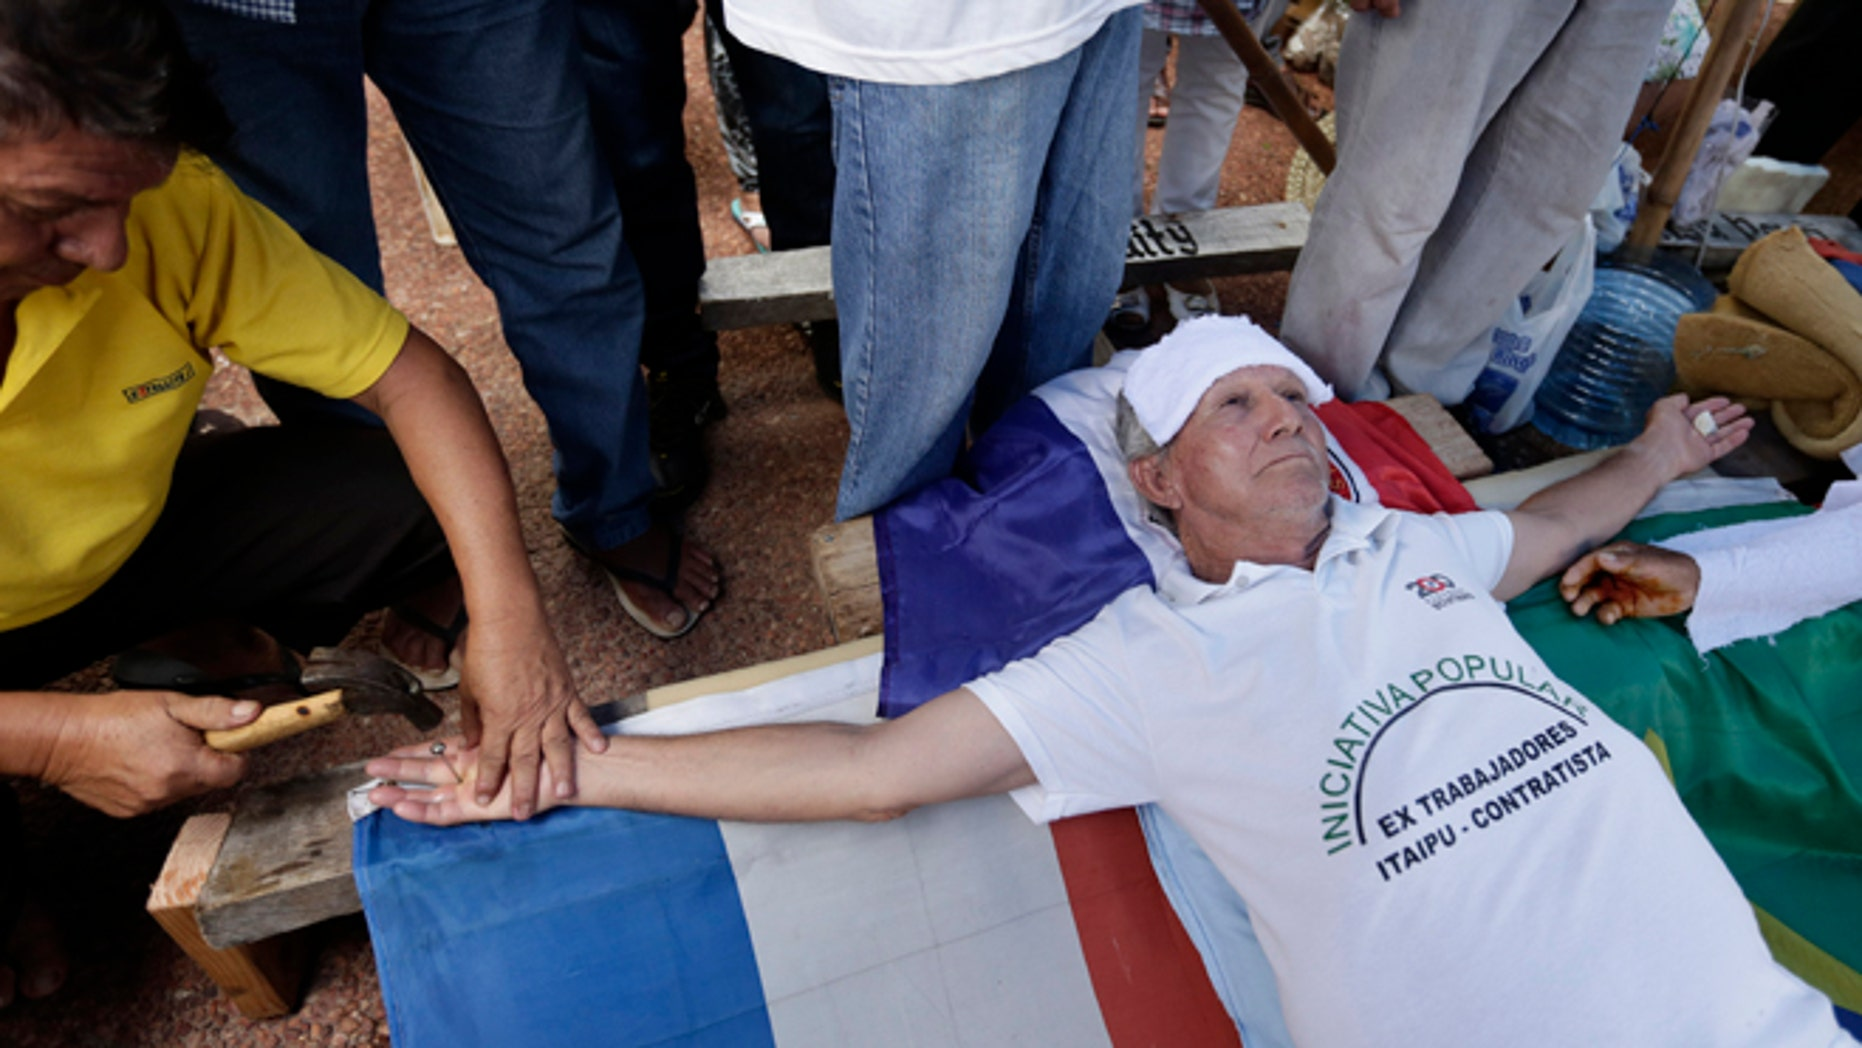 Pablo Garcete a former worker of Unicom, Conempa and Itaipu Binacional, Paraguayan Itaipu Dam contractors, is nailed to a cross in front of the Brazilian Embassy in Asuncion, Paraguay, Monday, Dec. 29, 2014. Garcete is part of a group that for the last 25 years, after the construction on the dam was completed, are symbolically crucifying themselves to demand compensation benefits from the contractors. The Itaipu hydroelectric dam on the Parana River straddles the Brazil-Paraguay border. (AP Photo/Jorge Saenz)